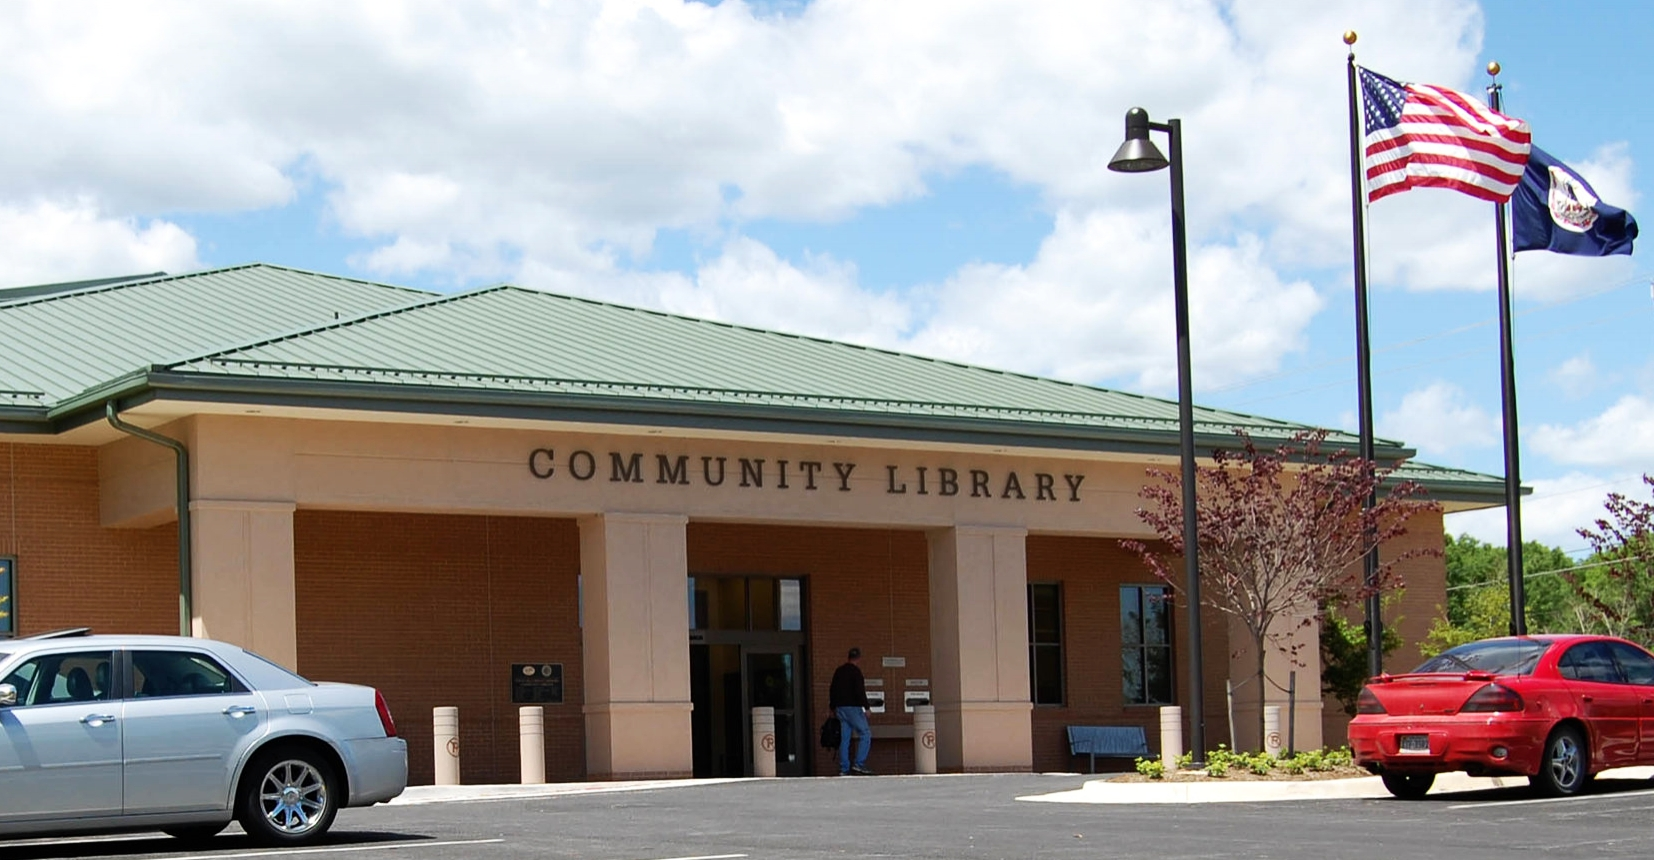 Farmville-Prince Edward Community Library #library#norfolk#children#technology#information#books